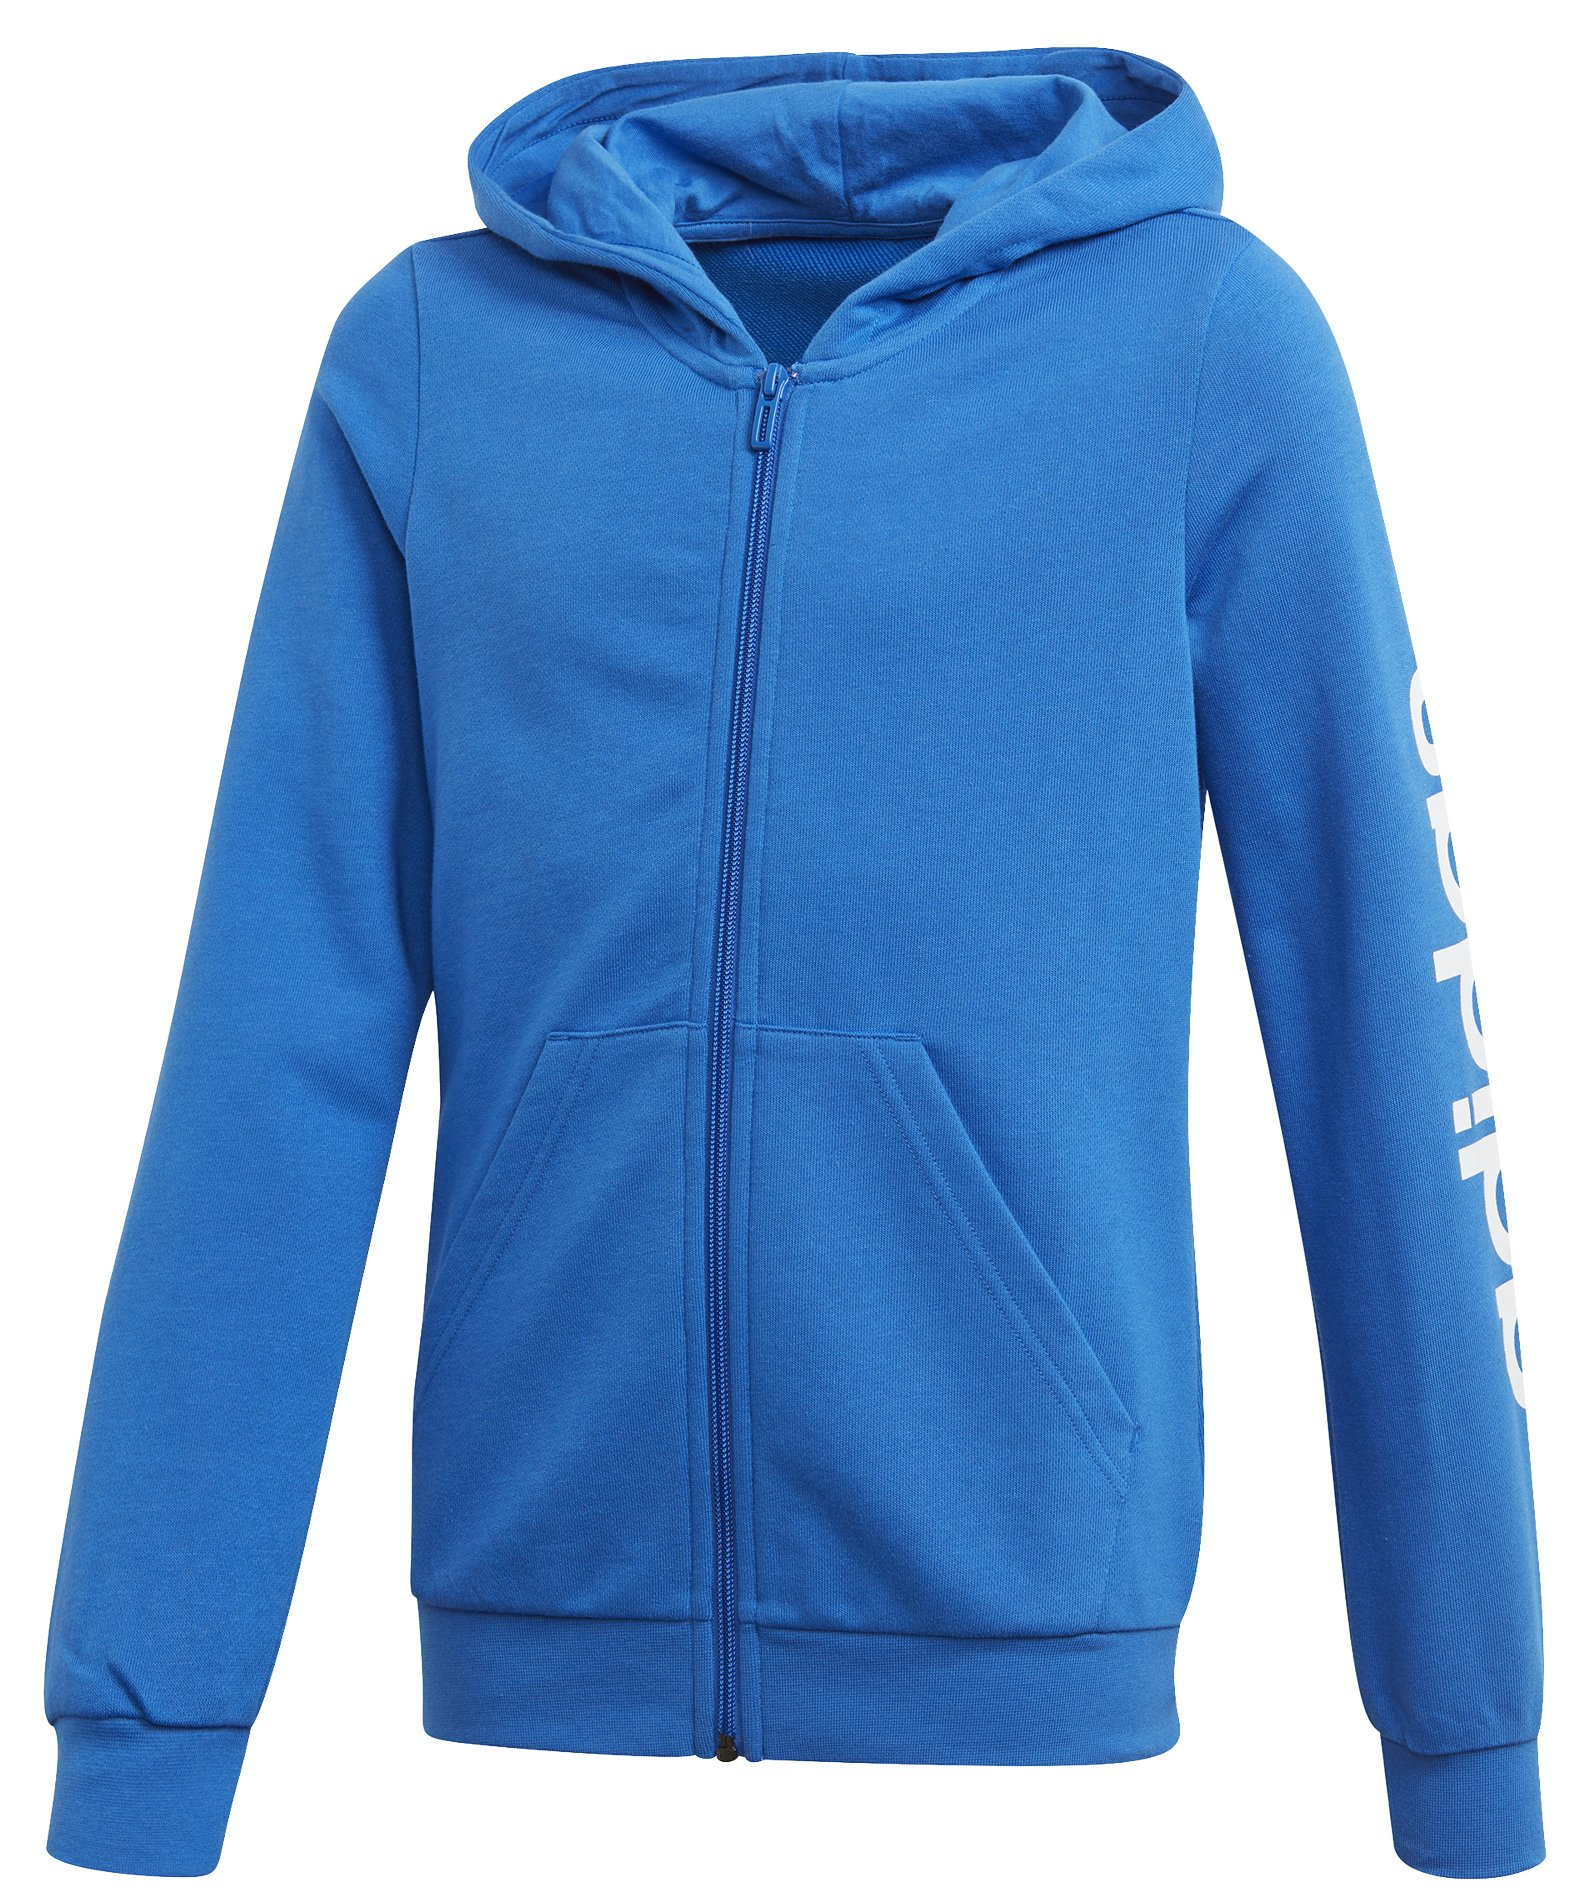 Adidas Youth Girls Essentials Linear Full Zip Hoodie 110